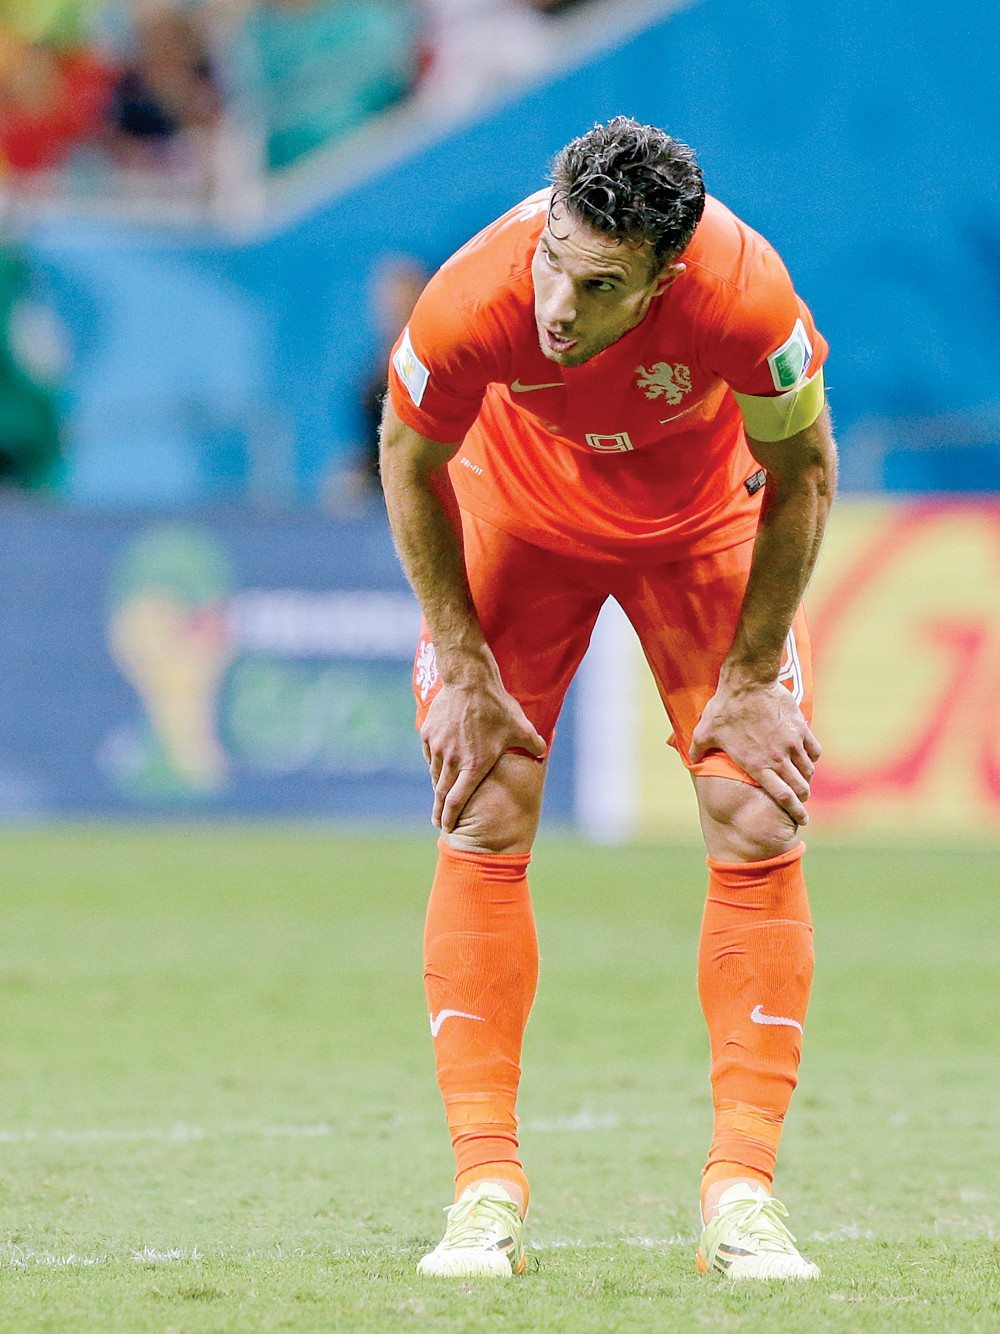 Matt Dunham/APA stomach ailment may keep Robin van Persie out of the Netherlands' World Cup match today against Argentina.